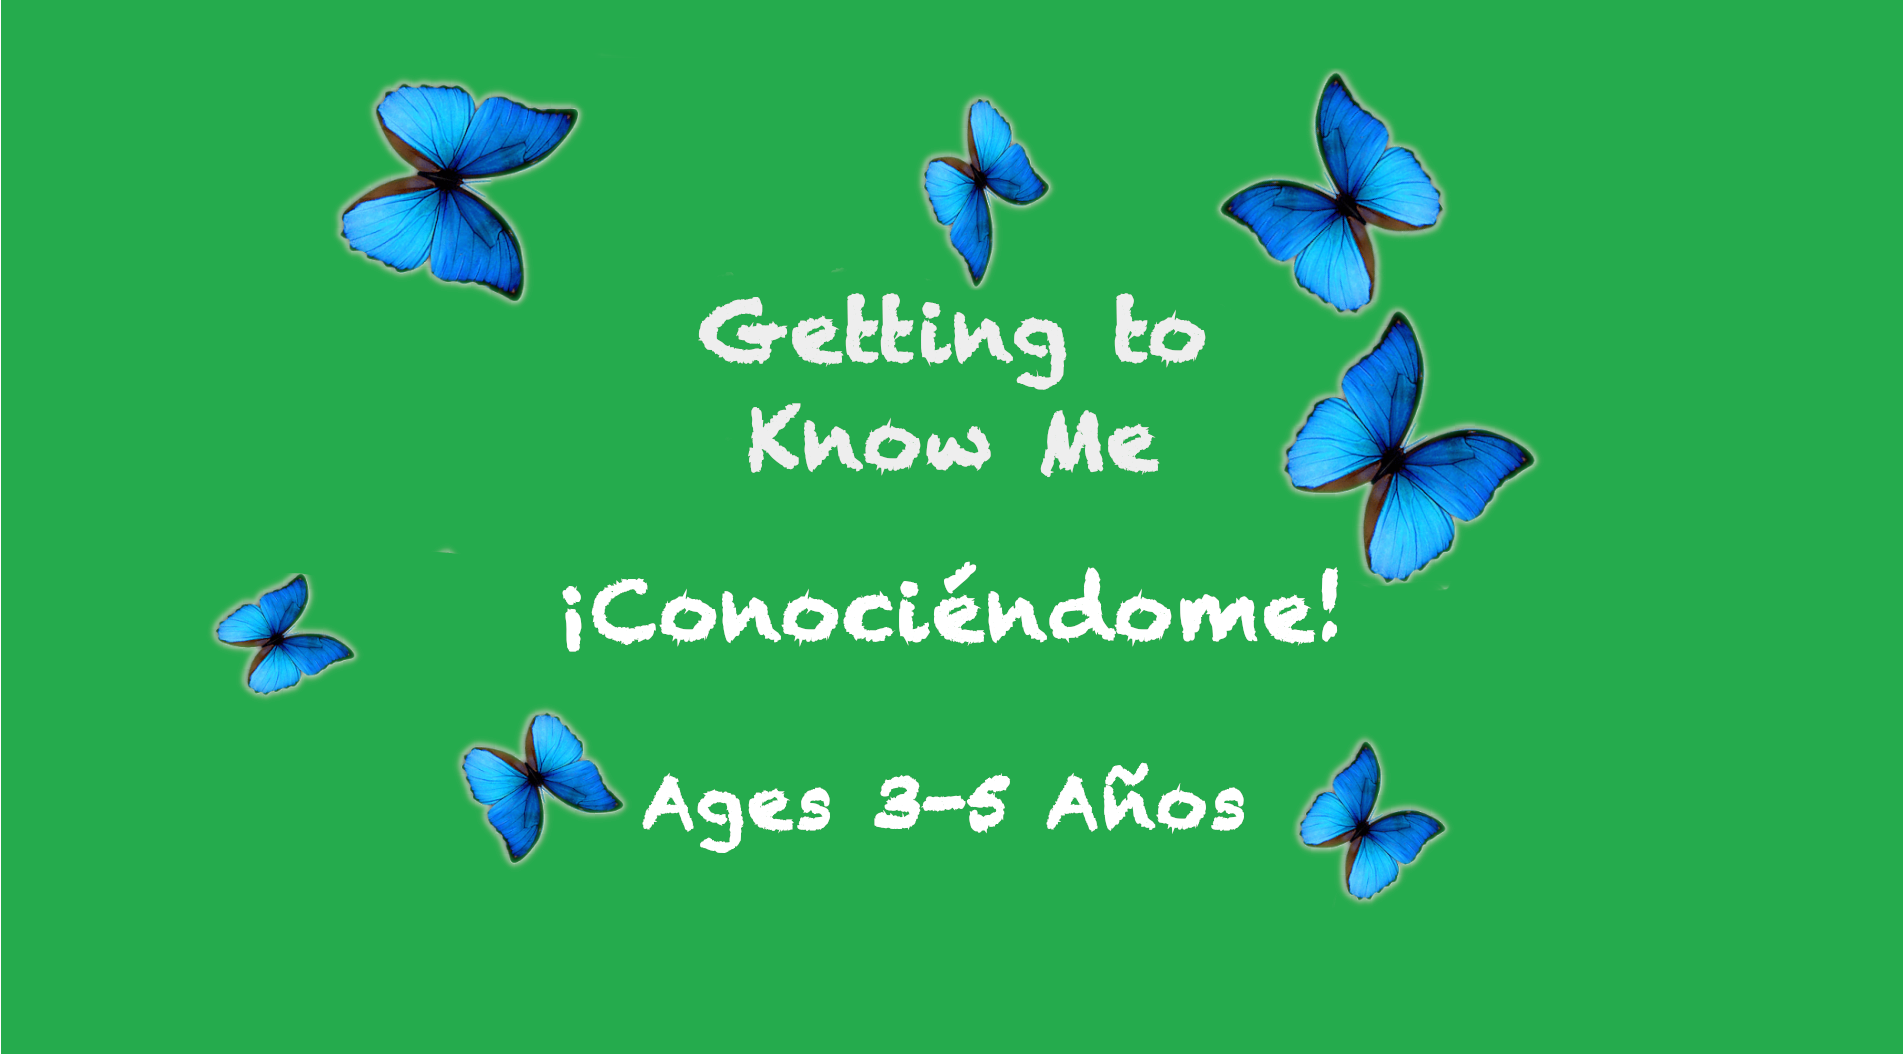 Weekly Themes #1:  Getting To Know Me | ¡Conociéndome! for 3-5 years old